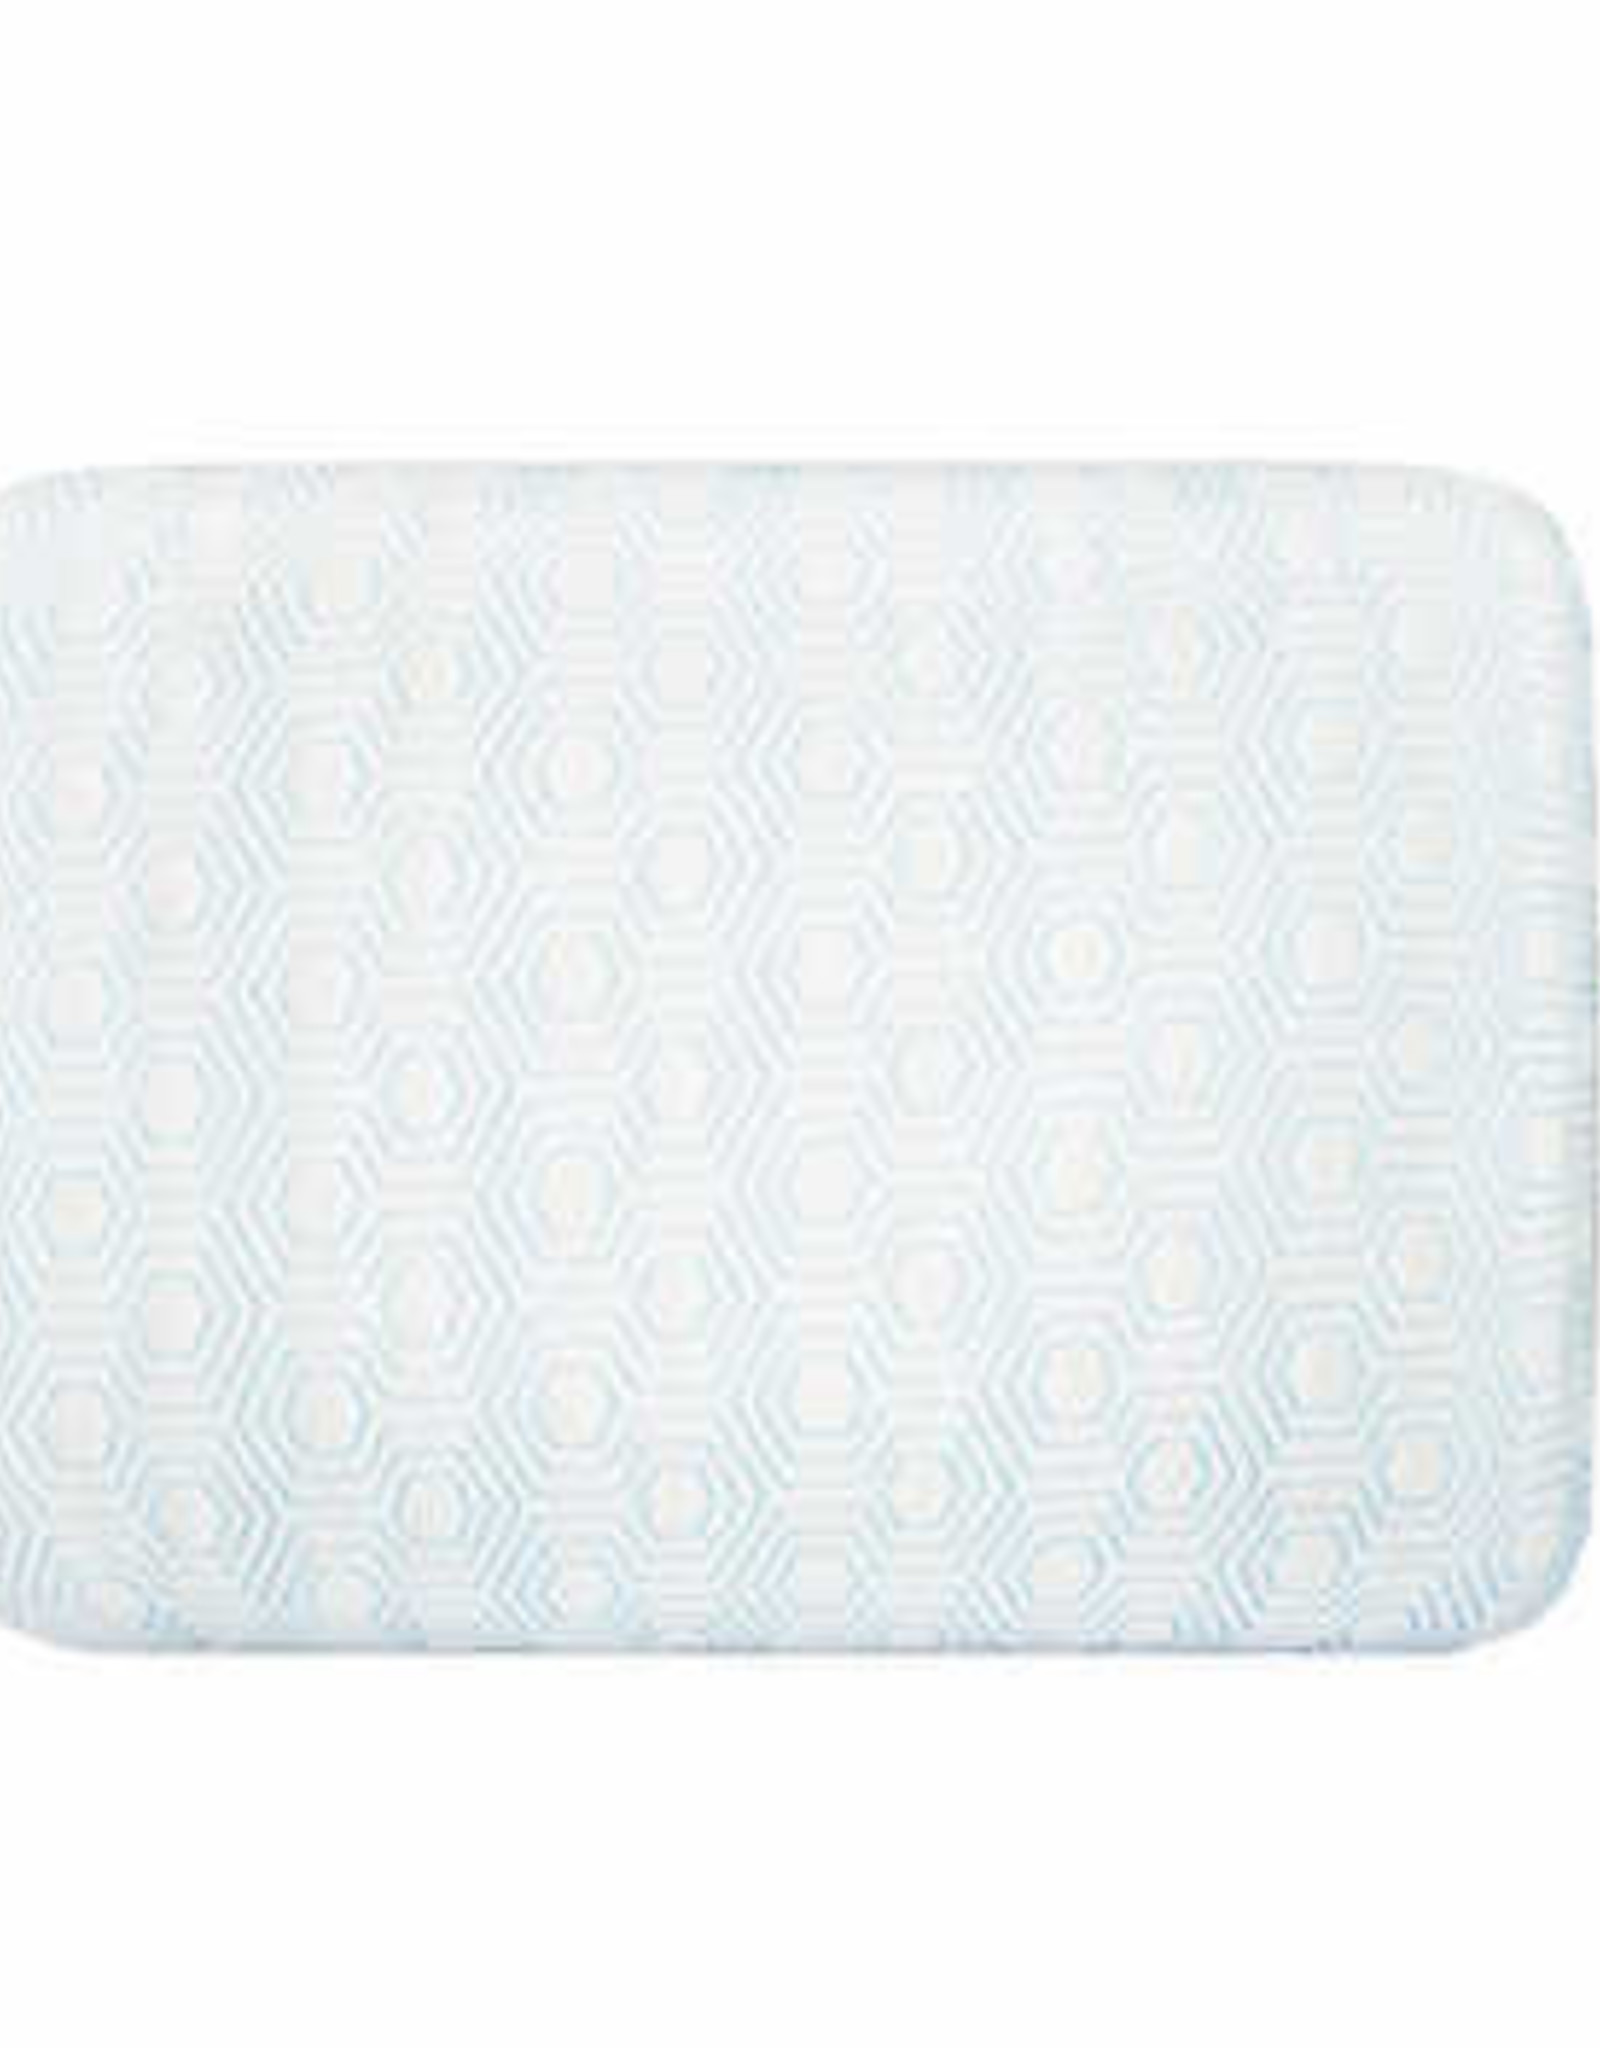 INNOCOR INC Novaform Overnight Recovery Gel Memory Foam Pillow with Cooling Celliant Cover